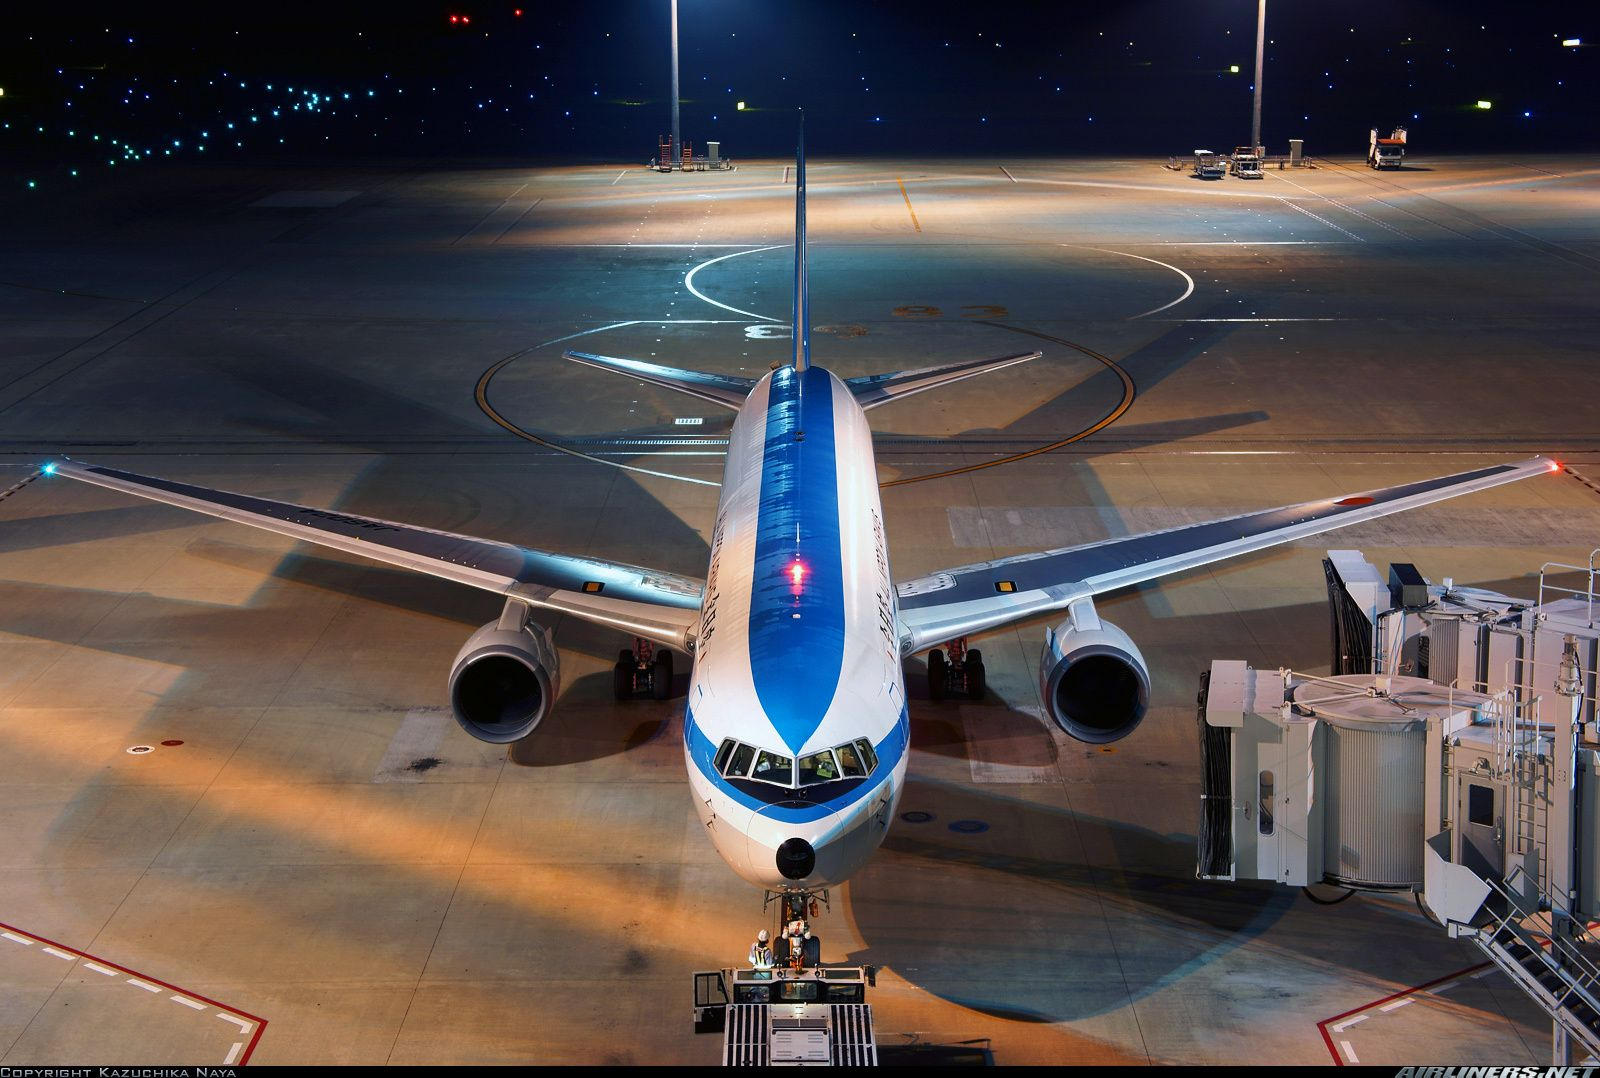 Boeing 767381 aircraft picture 飛行機